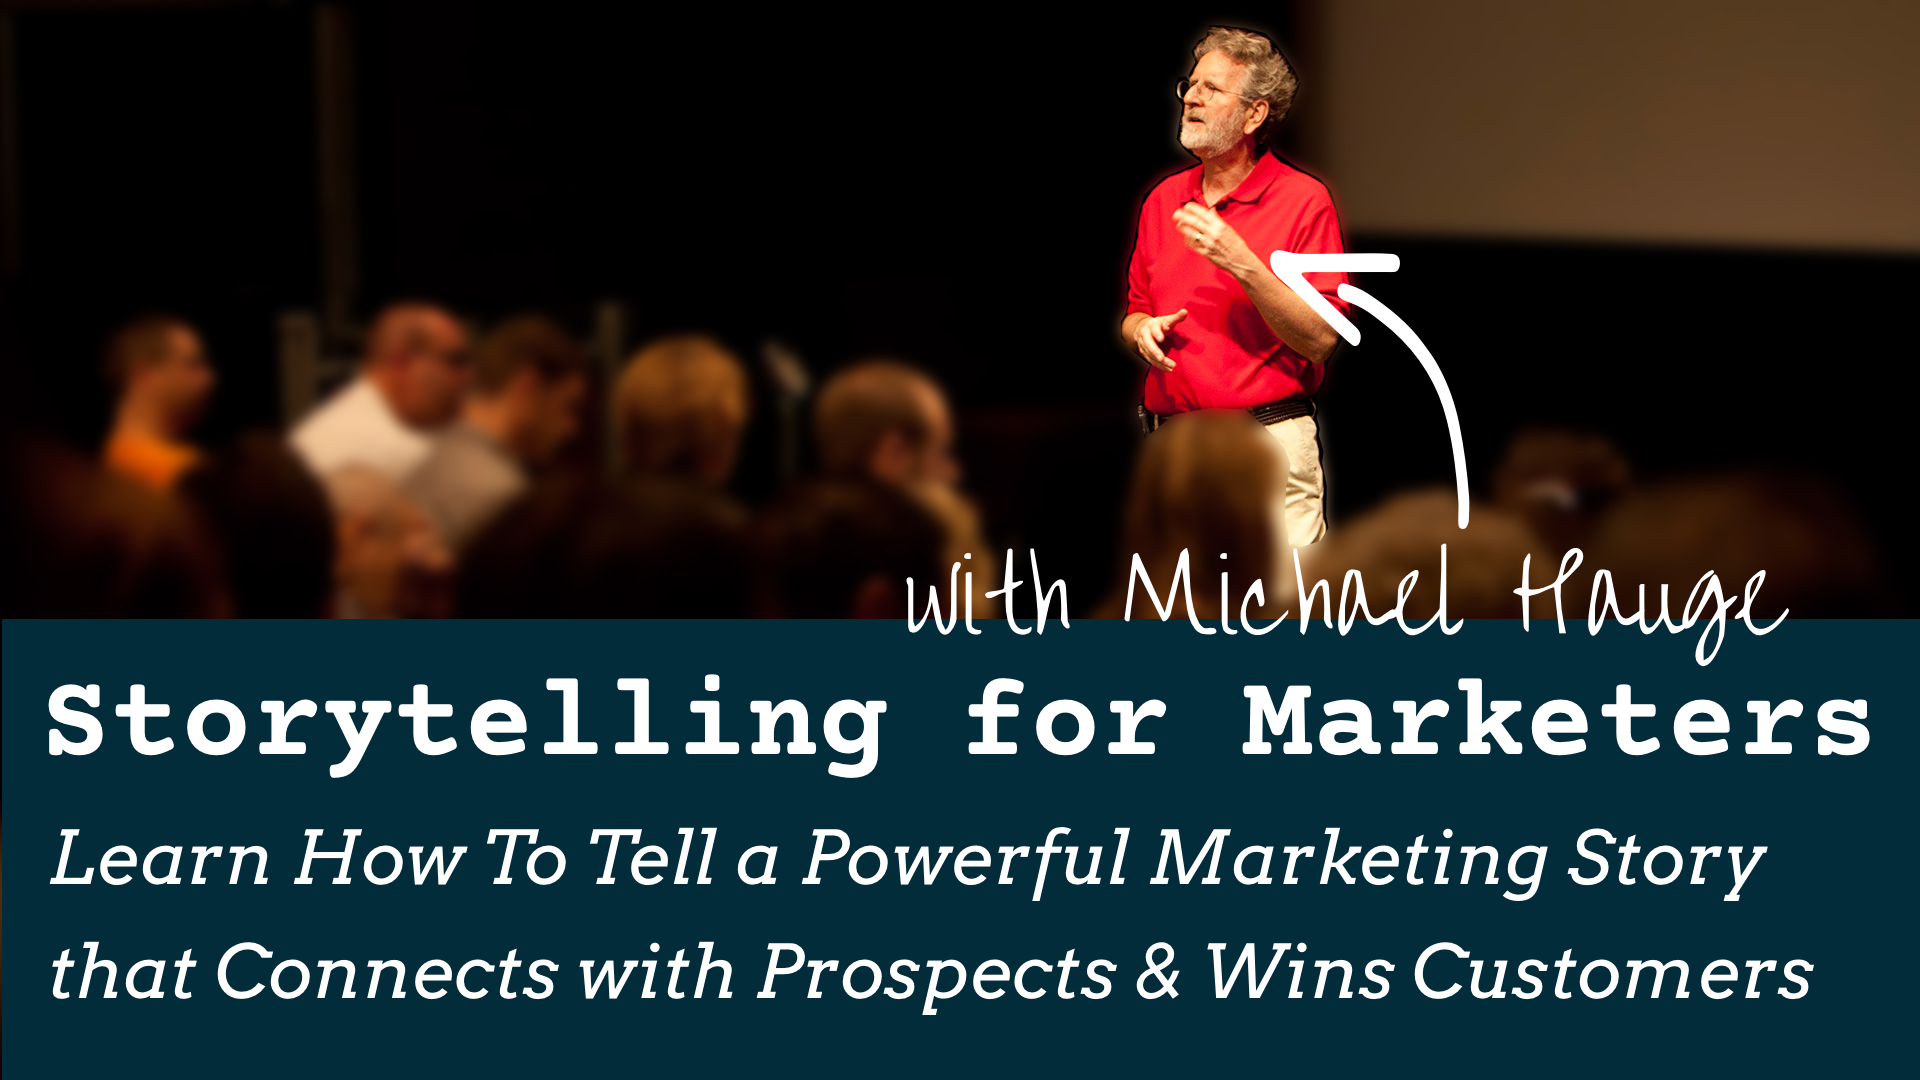 Storytelling for Marketers (with Michael Hauge)